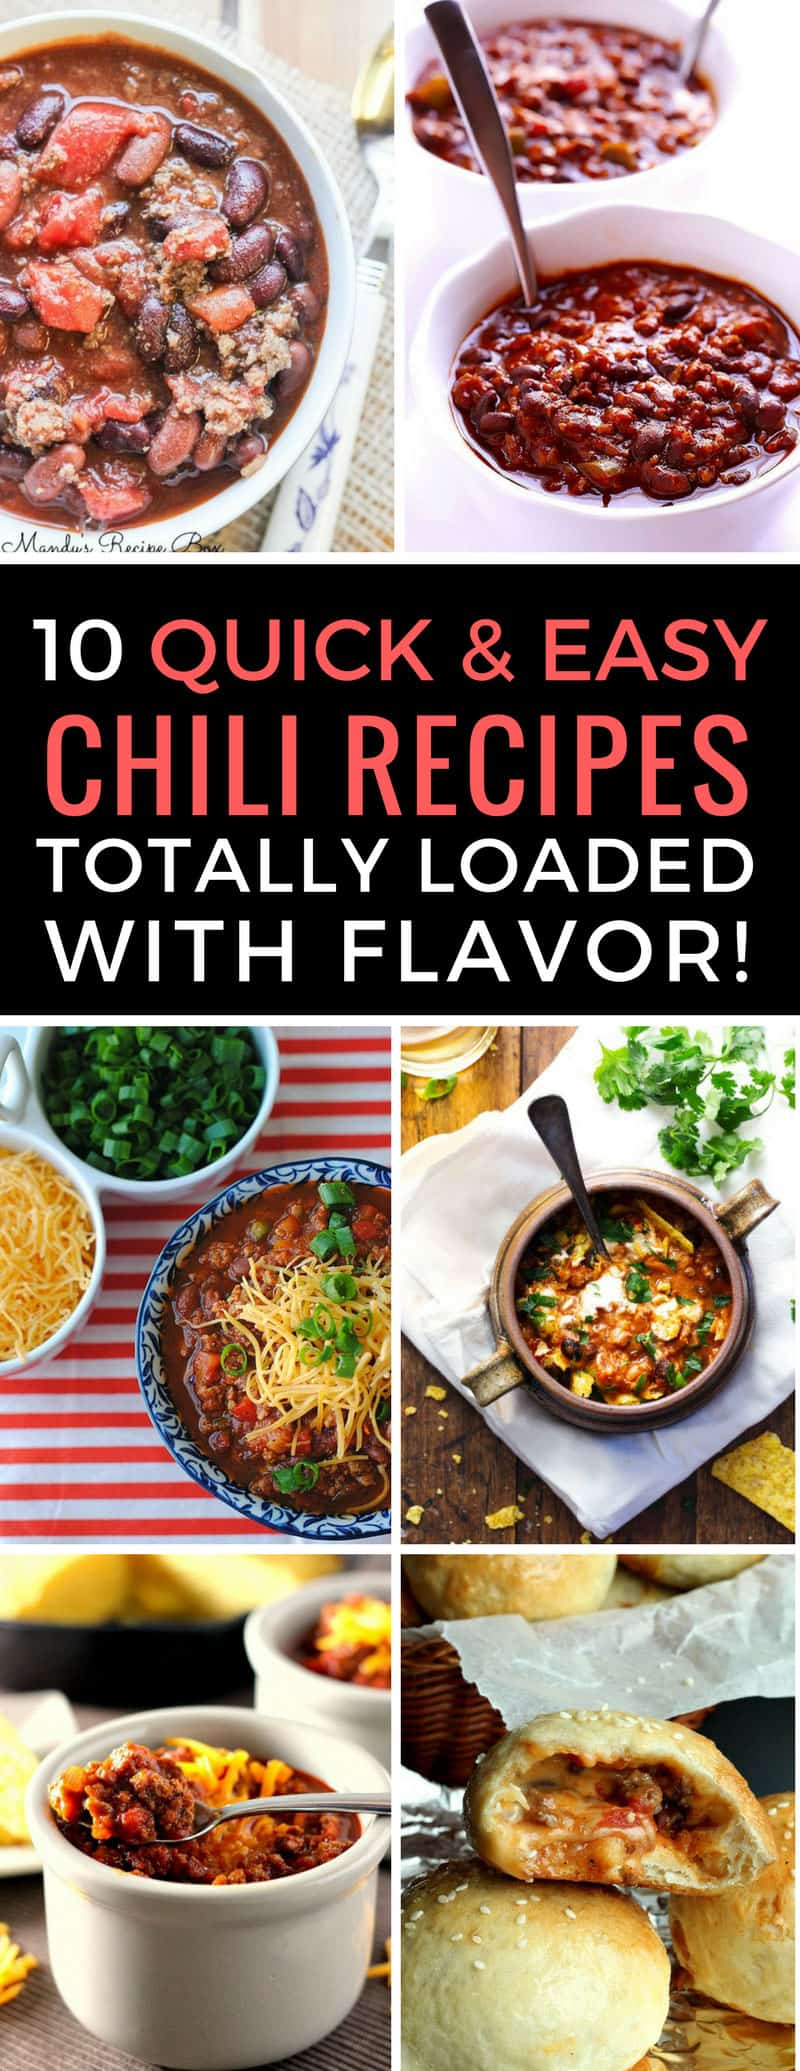 Easy chili recipes are comfort food at it's best! Can't wait to try these on game night. Thanks for sharing!